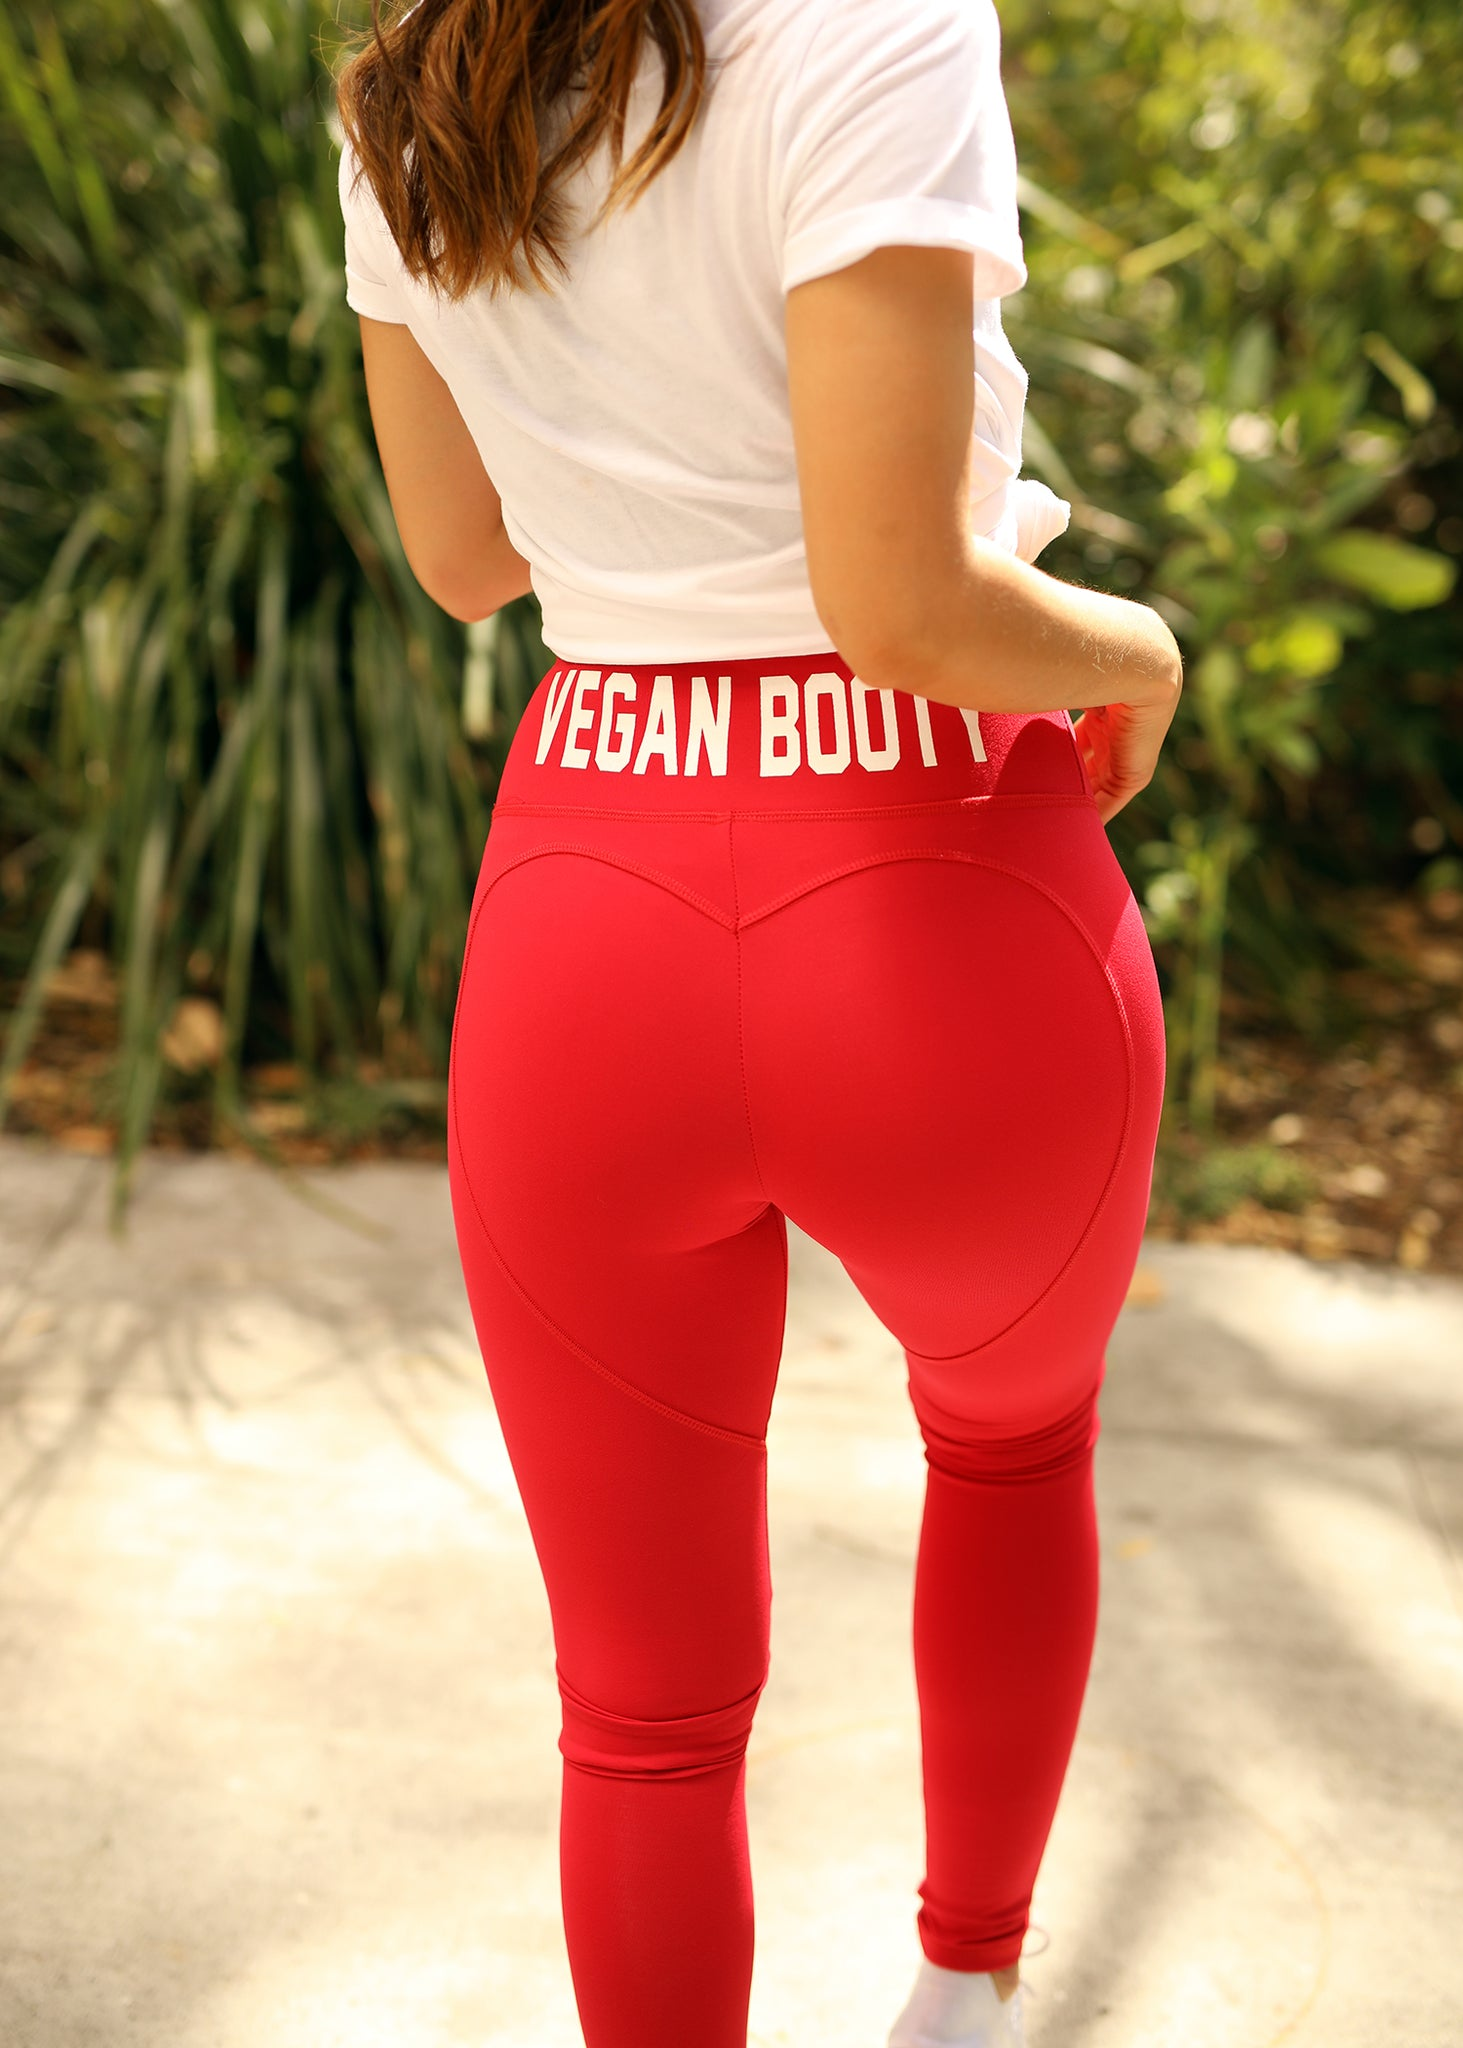 Vegan Booty Red Heartshape Leggings